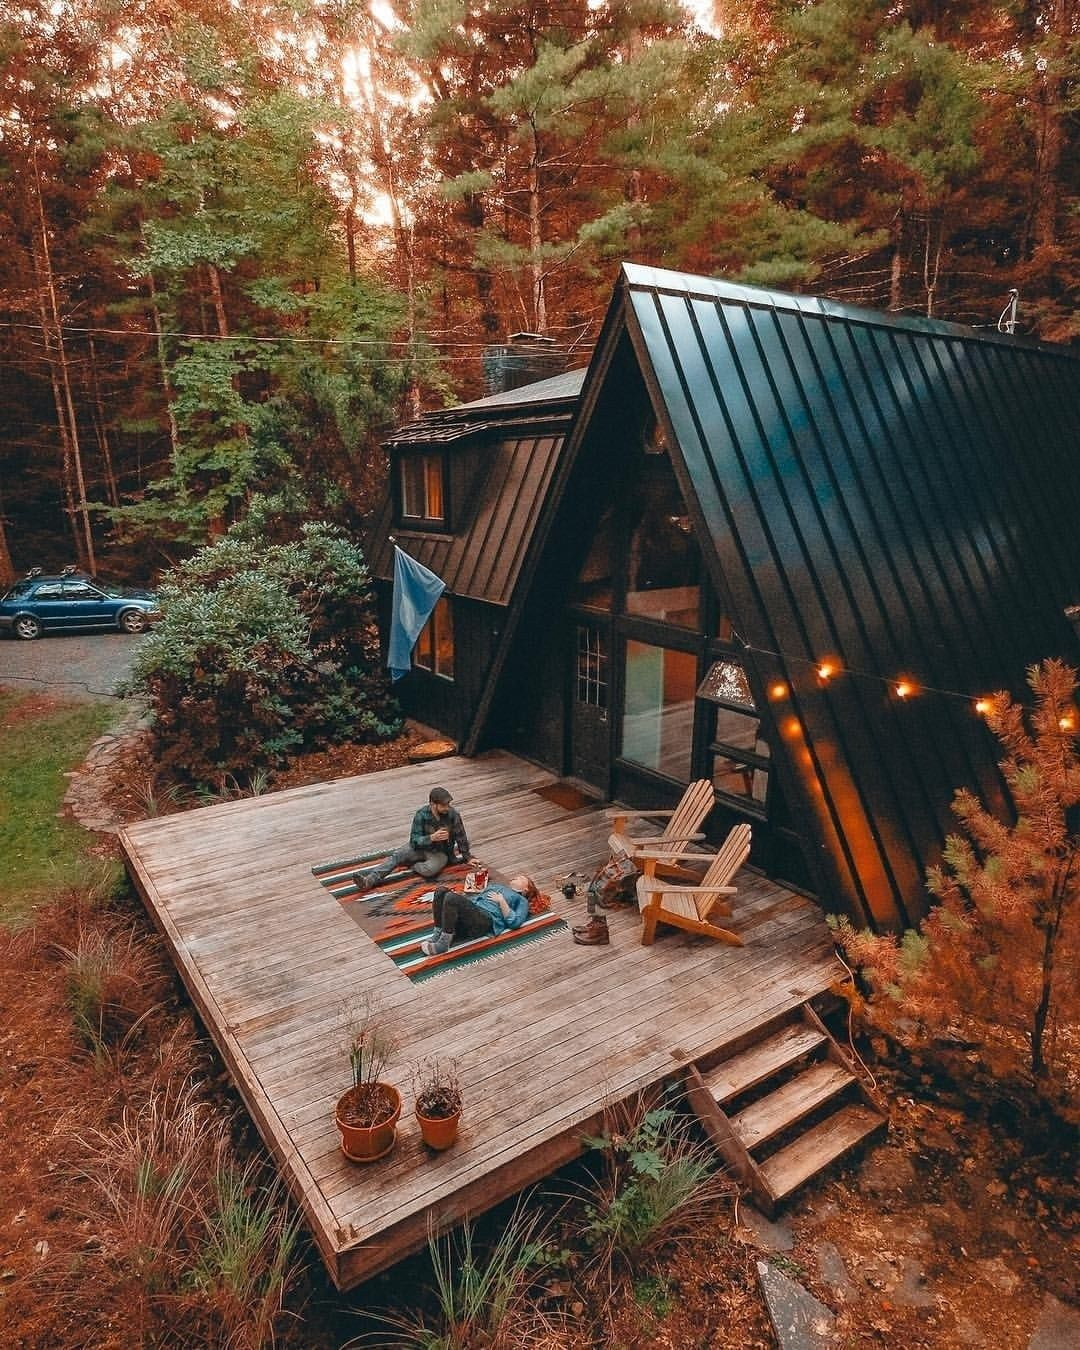 New 60 Small Mountain Cabin Plans With Loft House In Nature Tiny House Design House In The Woods